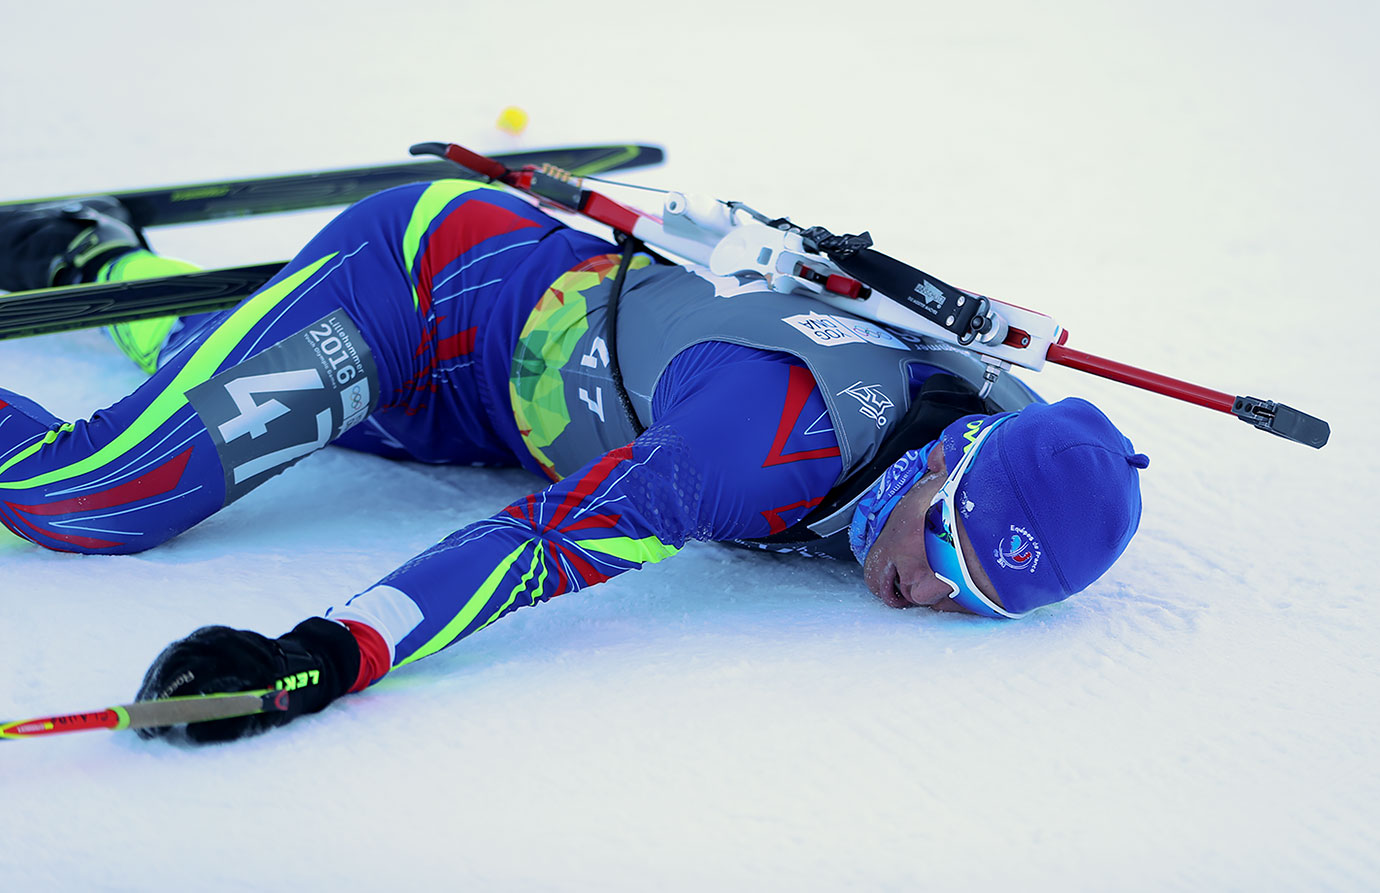 Emilien Claude (FRA) collapses after winning the Men's 7,5km Sprint  at the Hafjell Olympic Slope on Feb. 14, 2016 during the Winter Youth Olympic Games in Lillehammer, Norway.